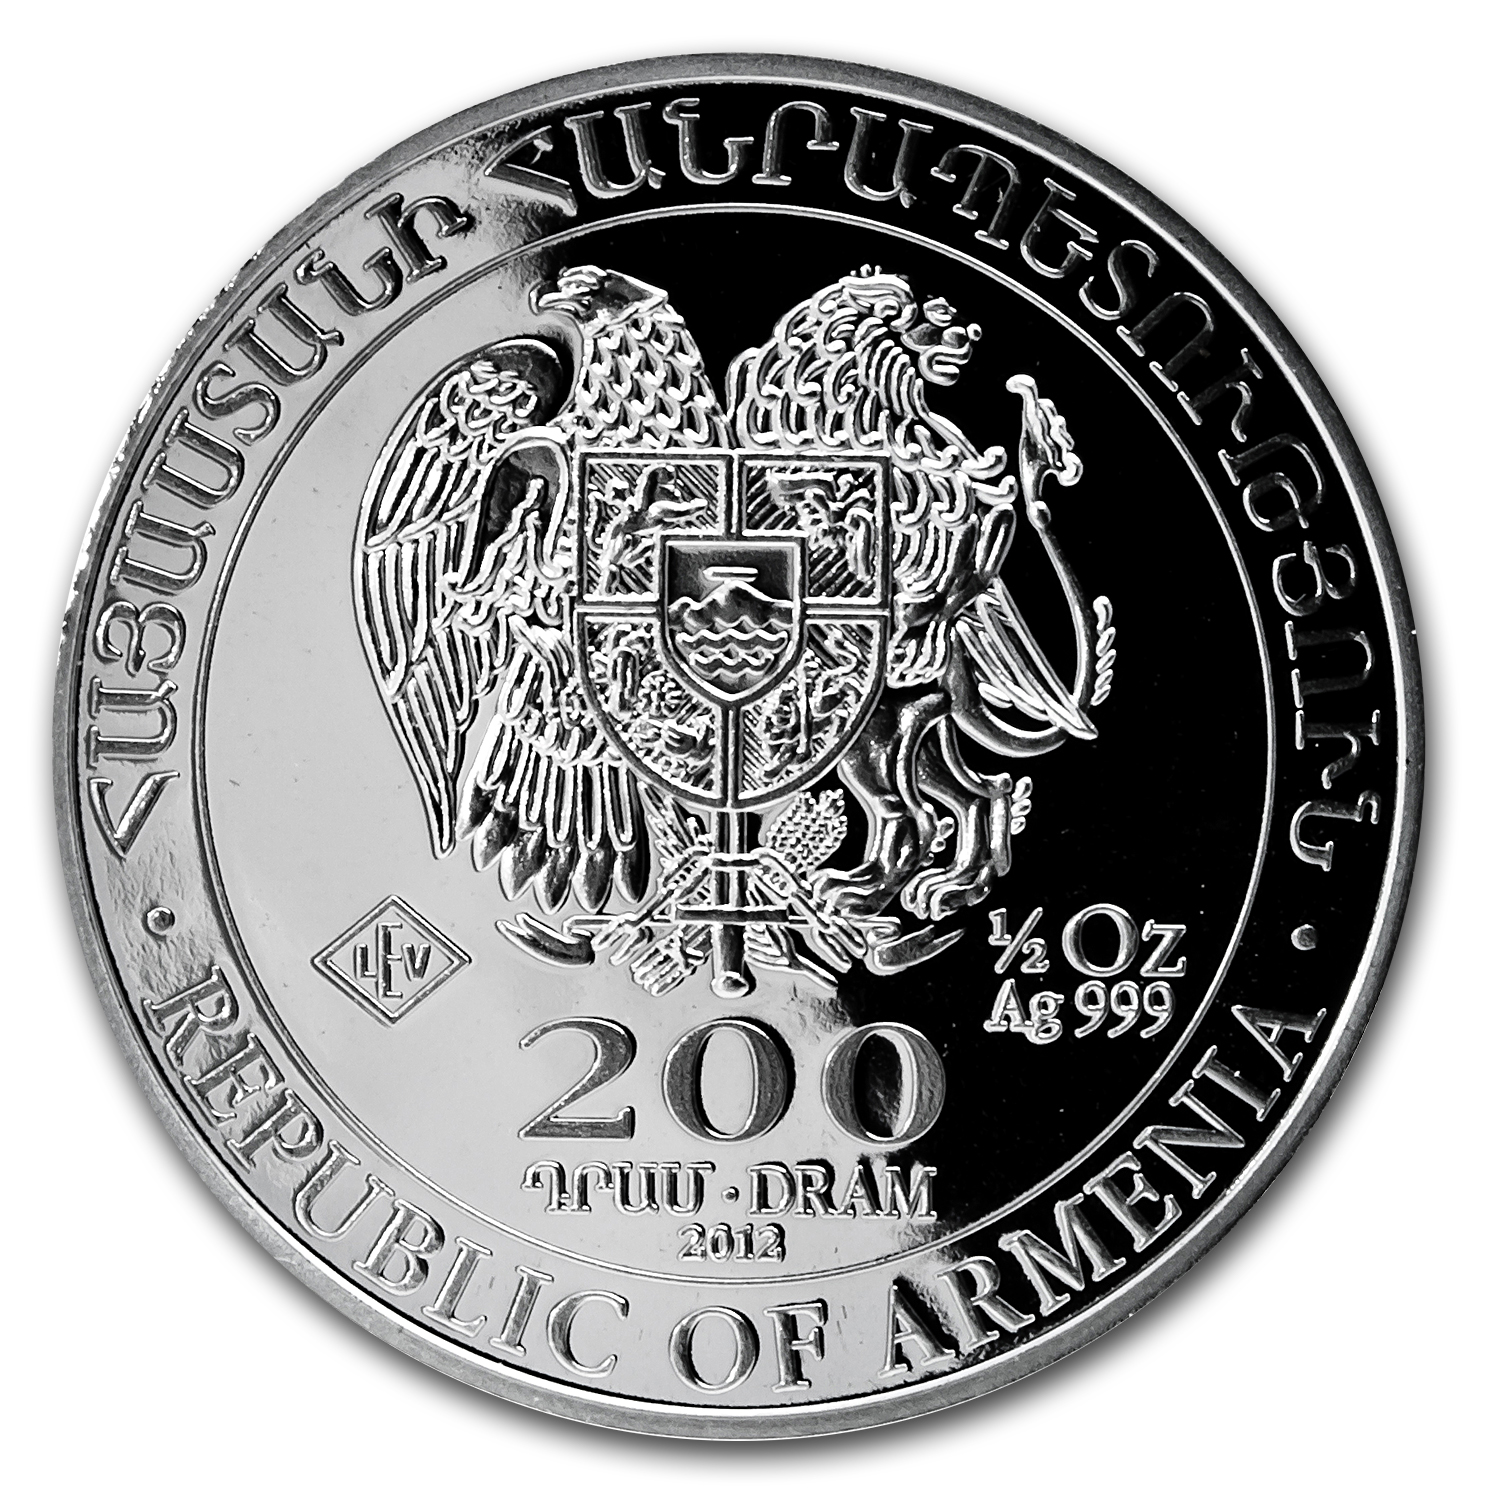 2012 Armenia 3-Coin Silver Noah's Ark Pf Set (1.75 oz, Box & COA)